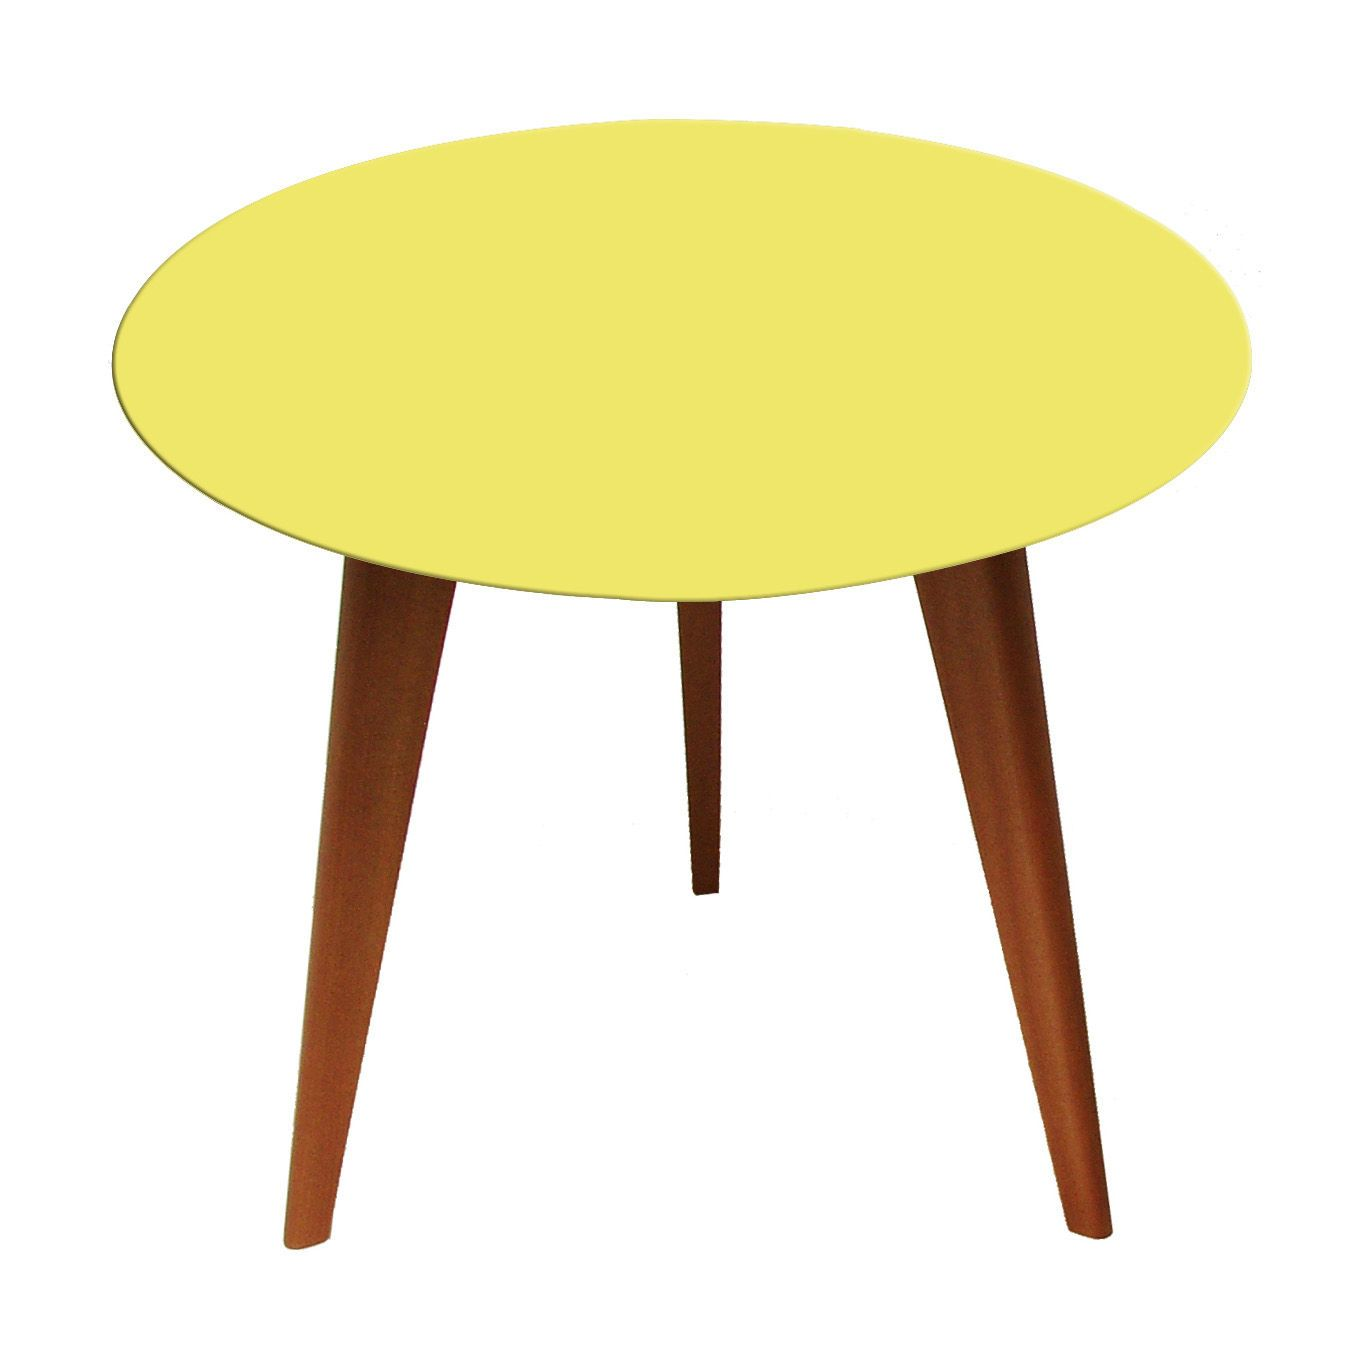 Beautifull Small Round Coffee Table Round Coffee Table Ikea Round Coffee Table Sets White Round Coffee Table [ 1370 x 1368 Pixel ]